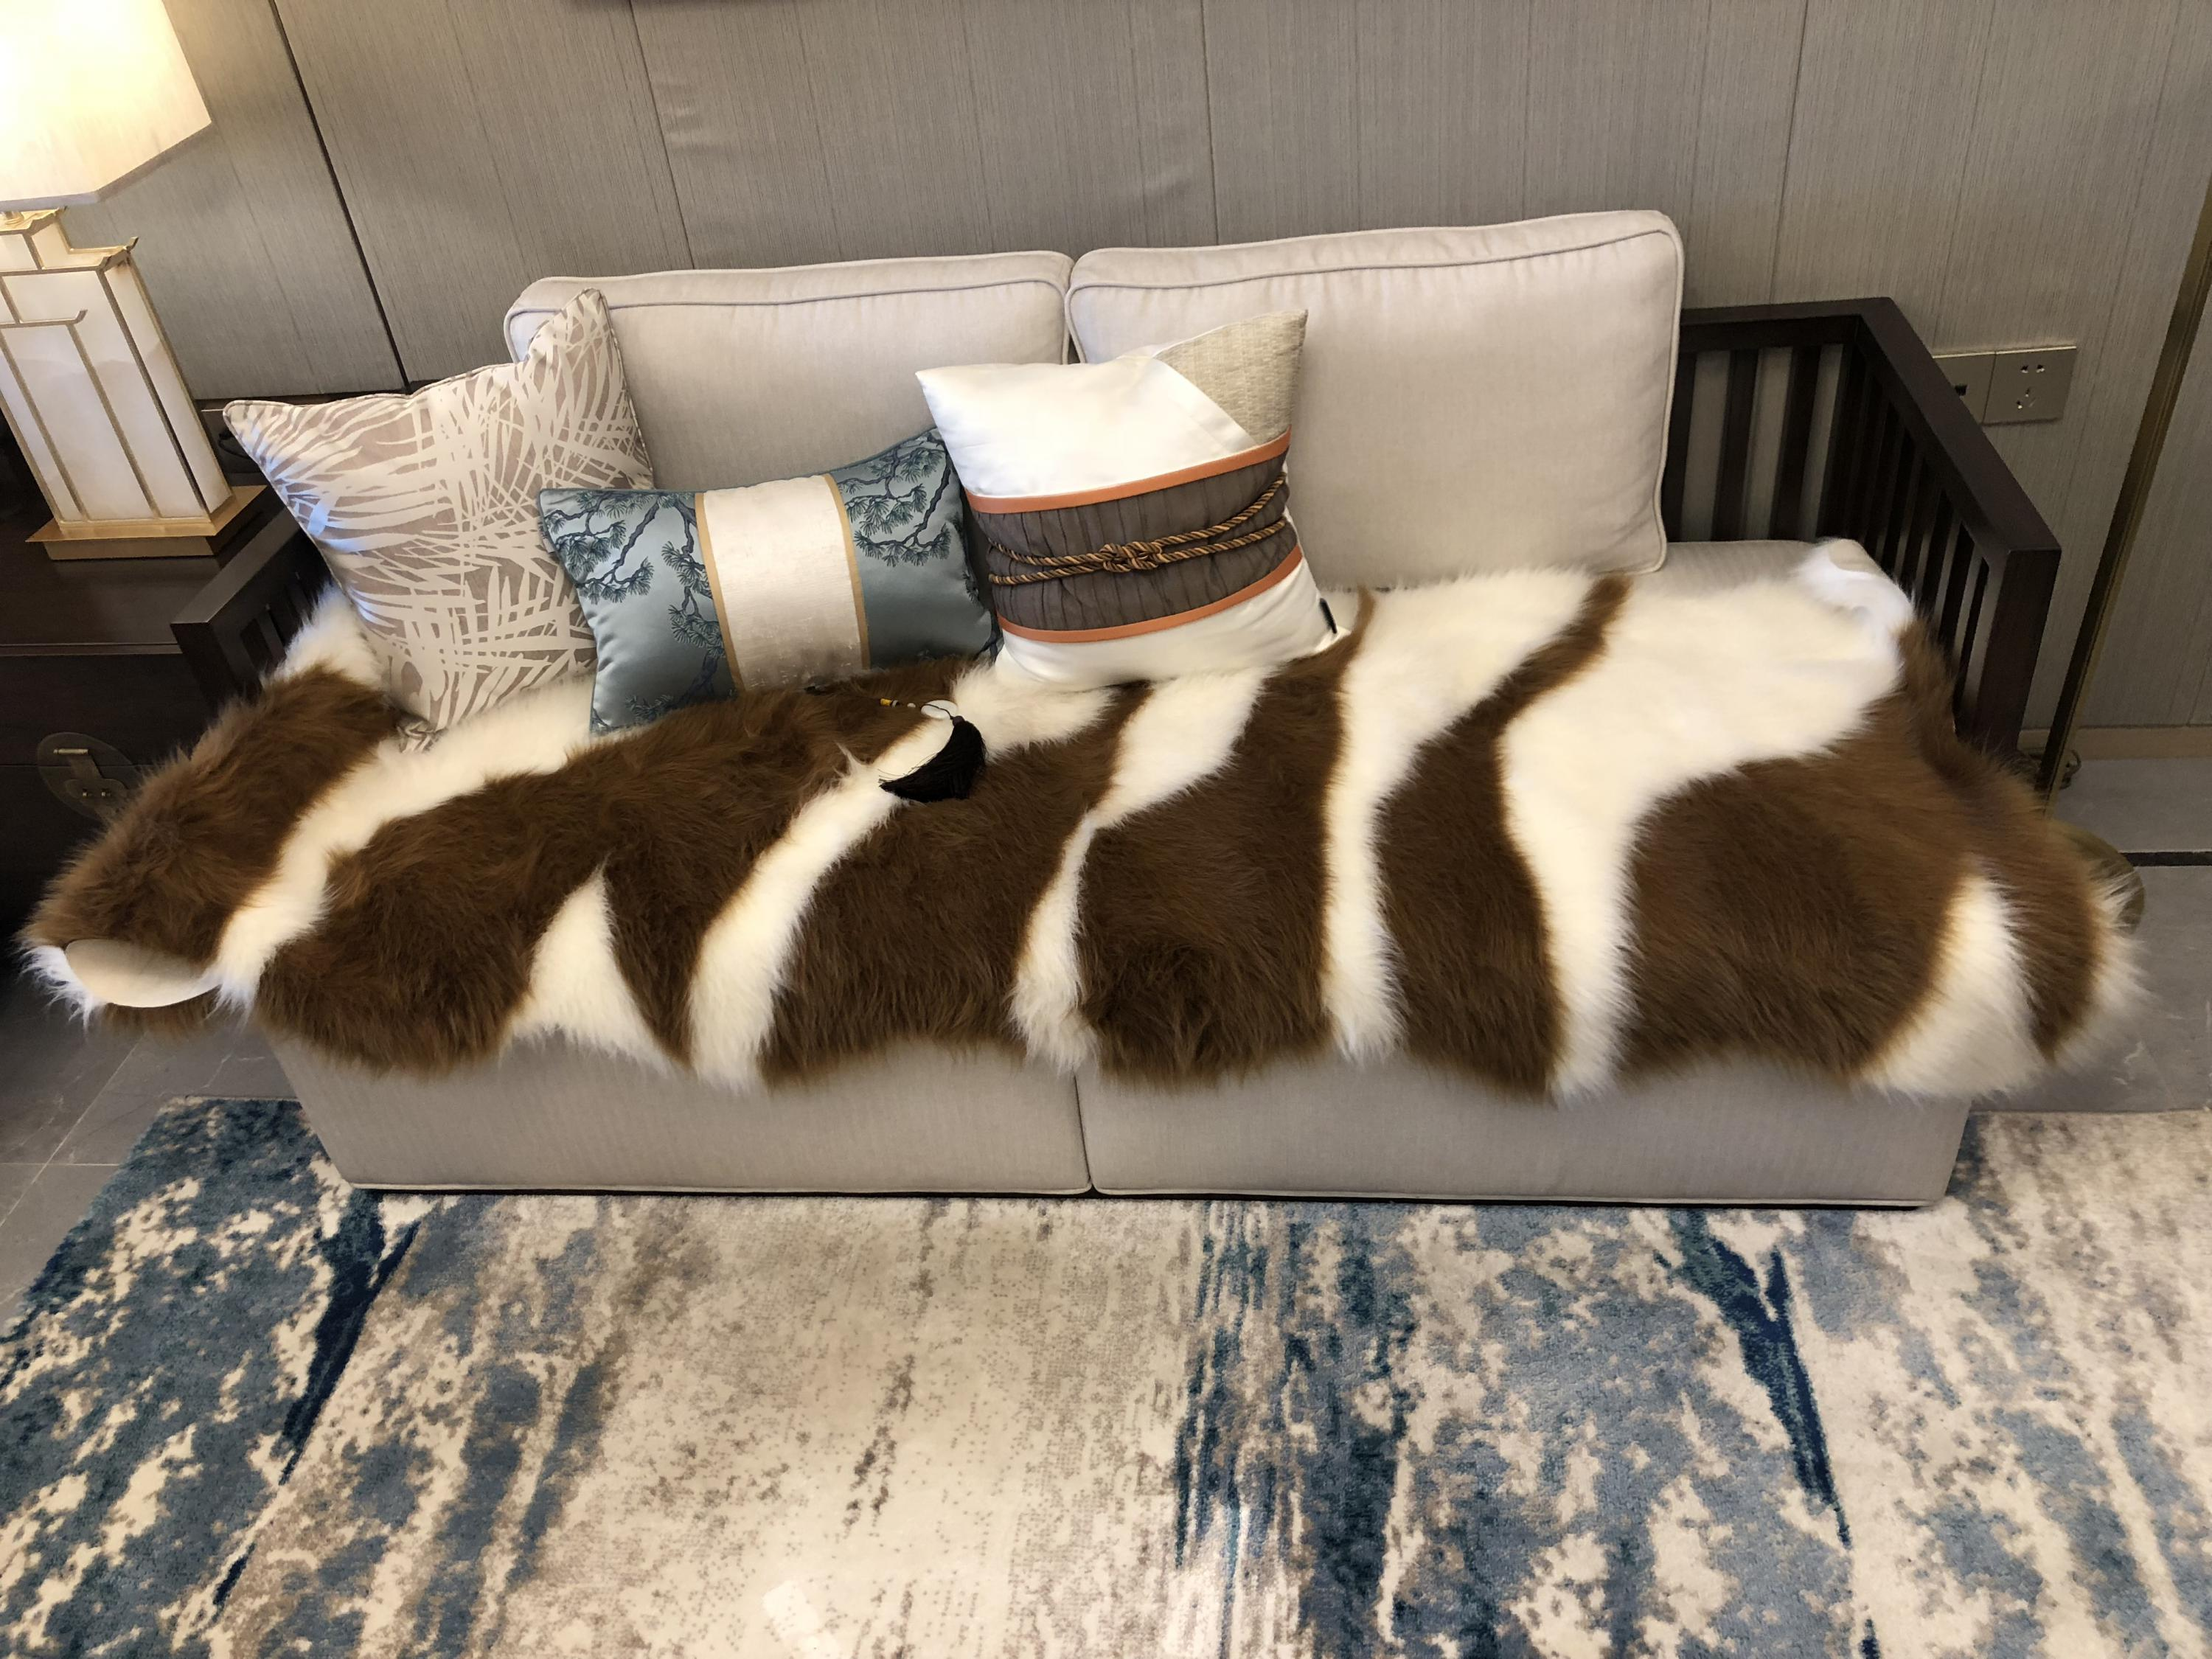 Animal skin cow zebra pattern rug area carpet living room rug bedroom rug white black brown for kids chair cover rug sofa carpet